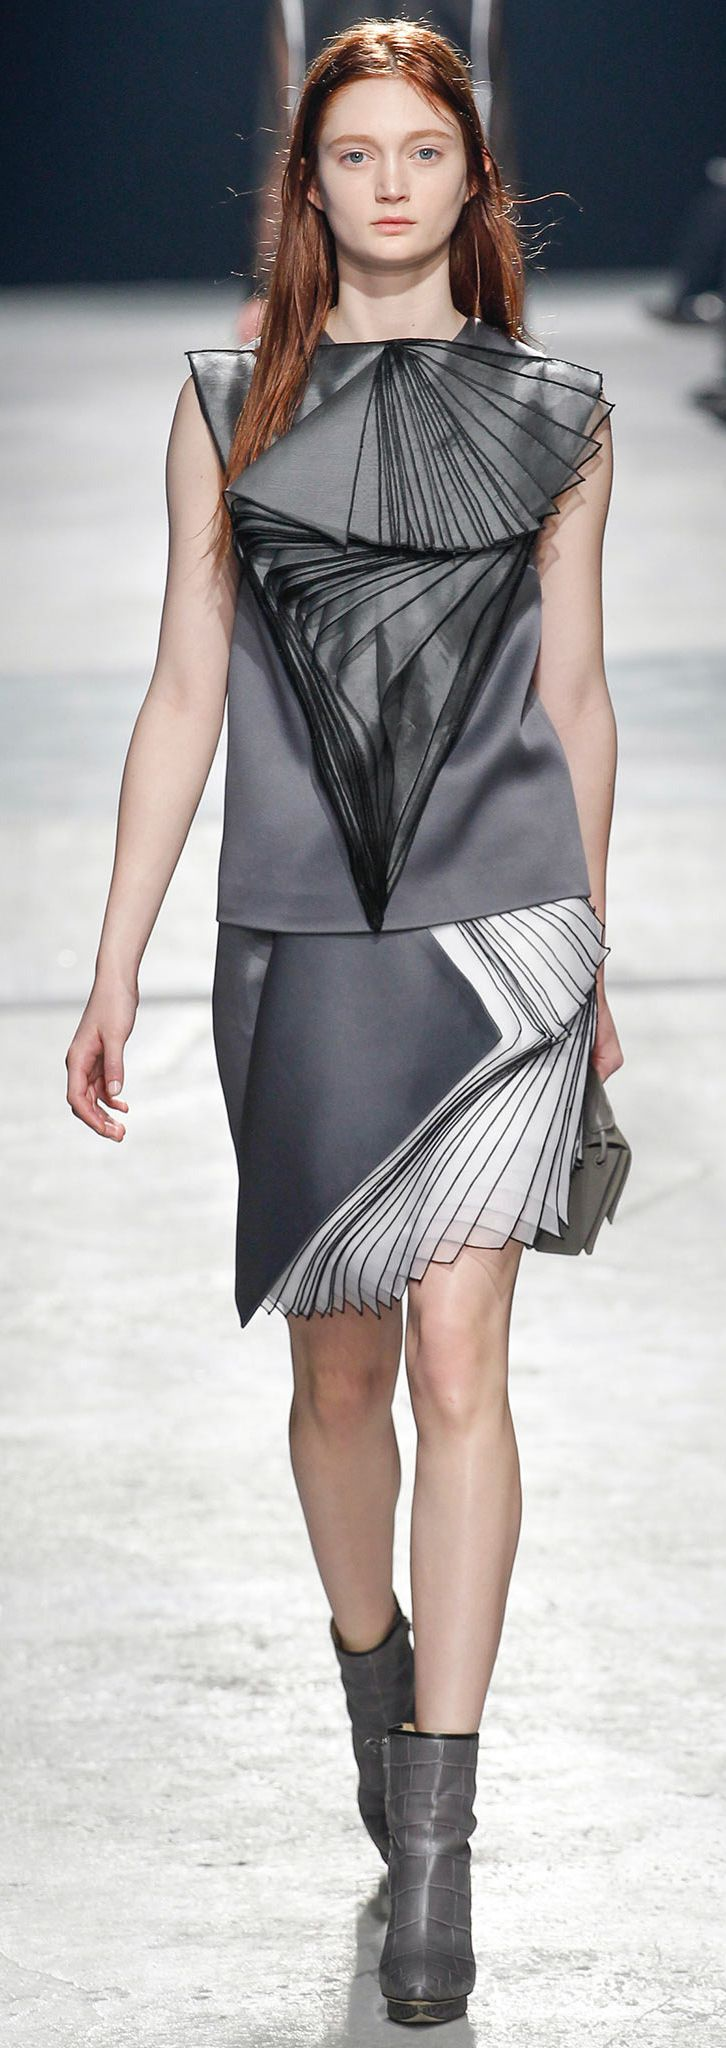 Wearable Art - tonal dress with beautifully sculptural, 3D layered construct - angular patterns; innovative fashion structures // Christopher Kane